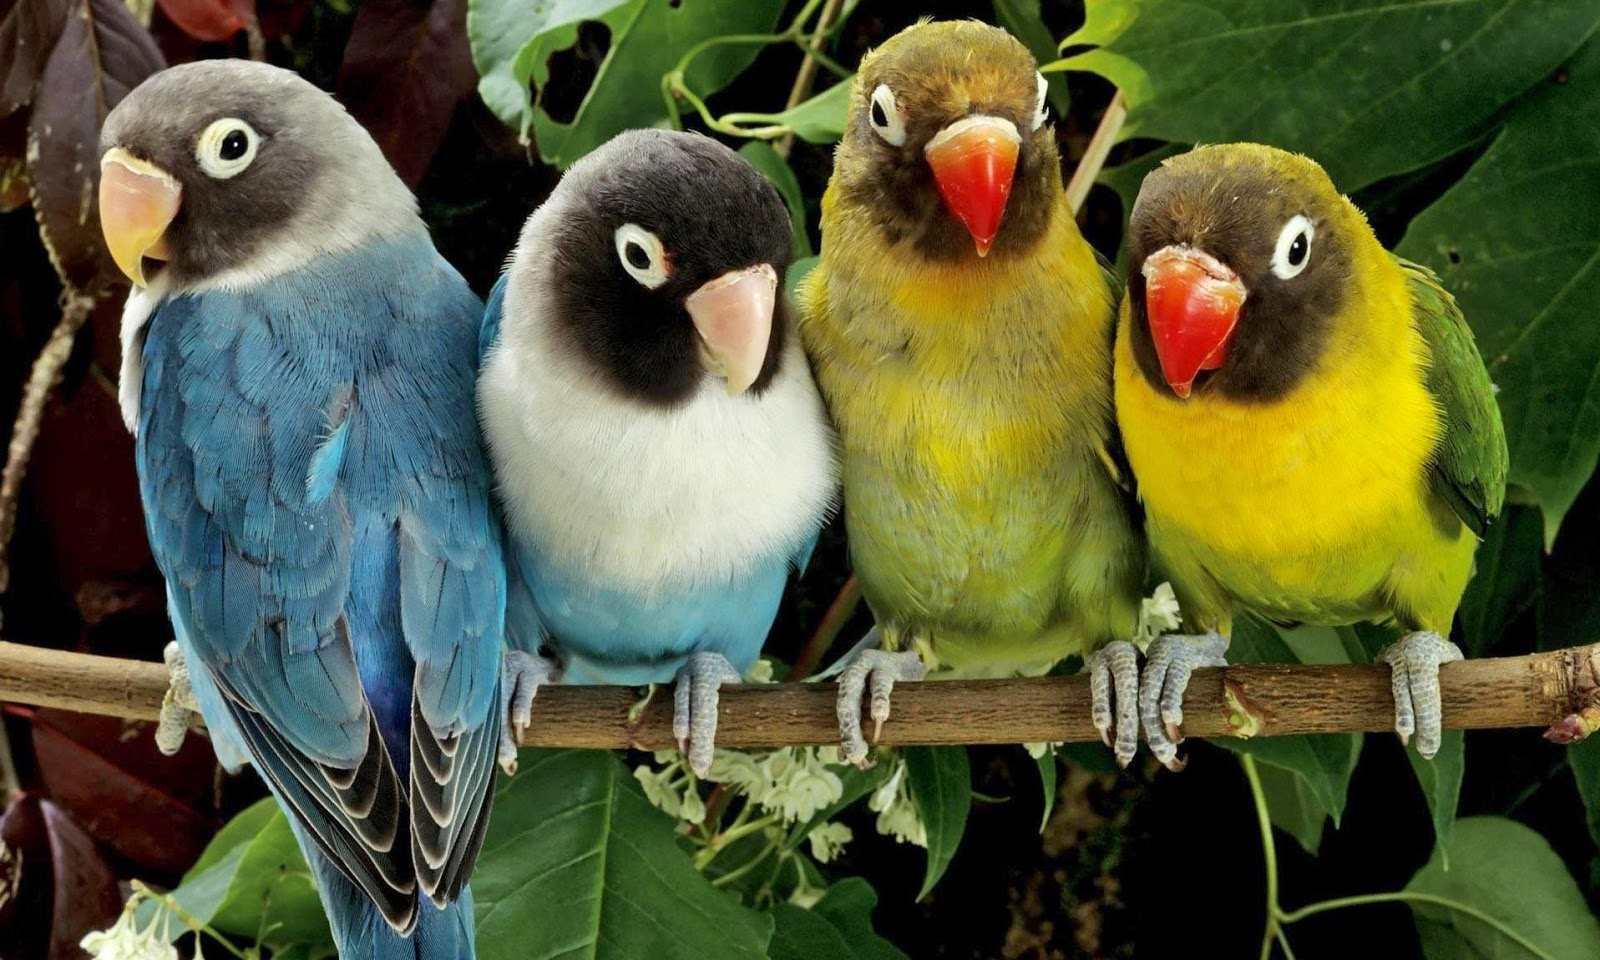 beautiful birds pics hd for kids wallpapers | parot bird online